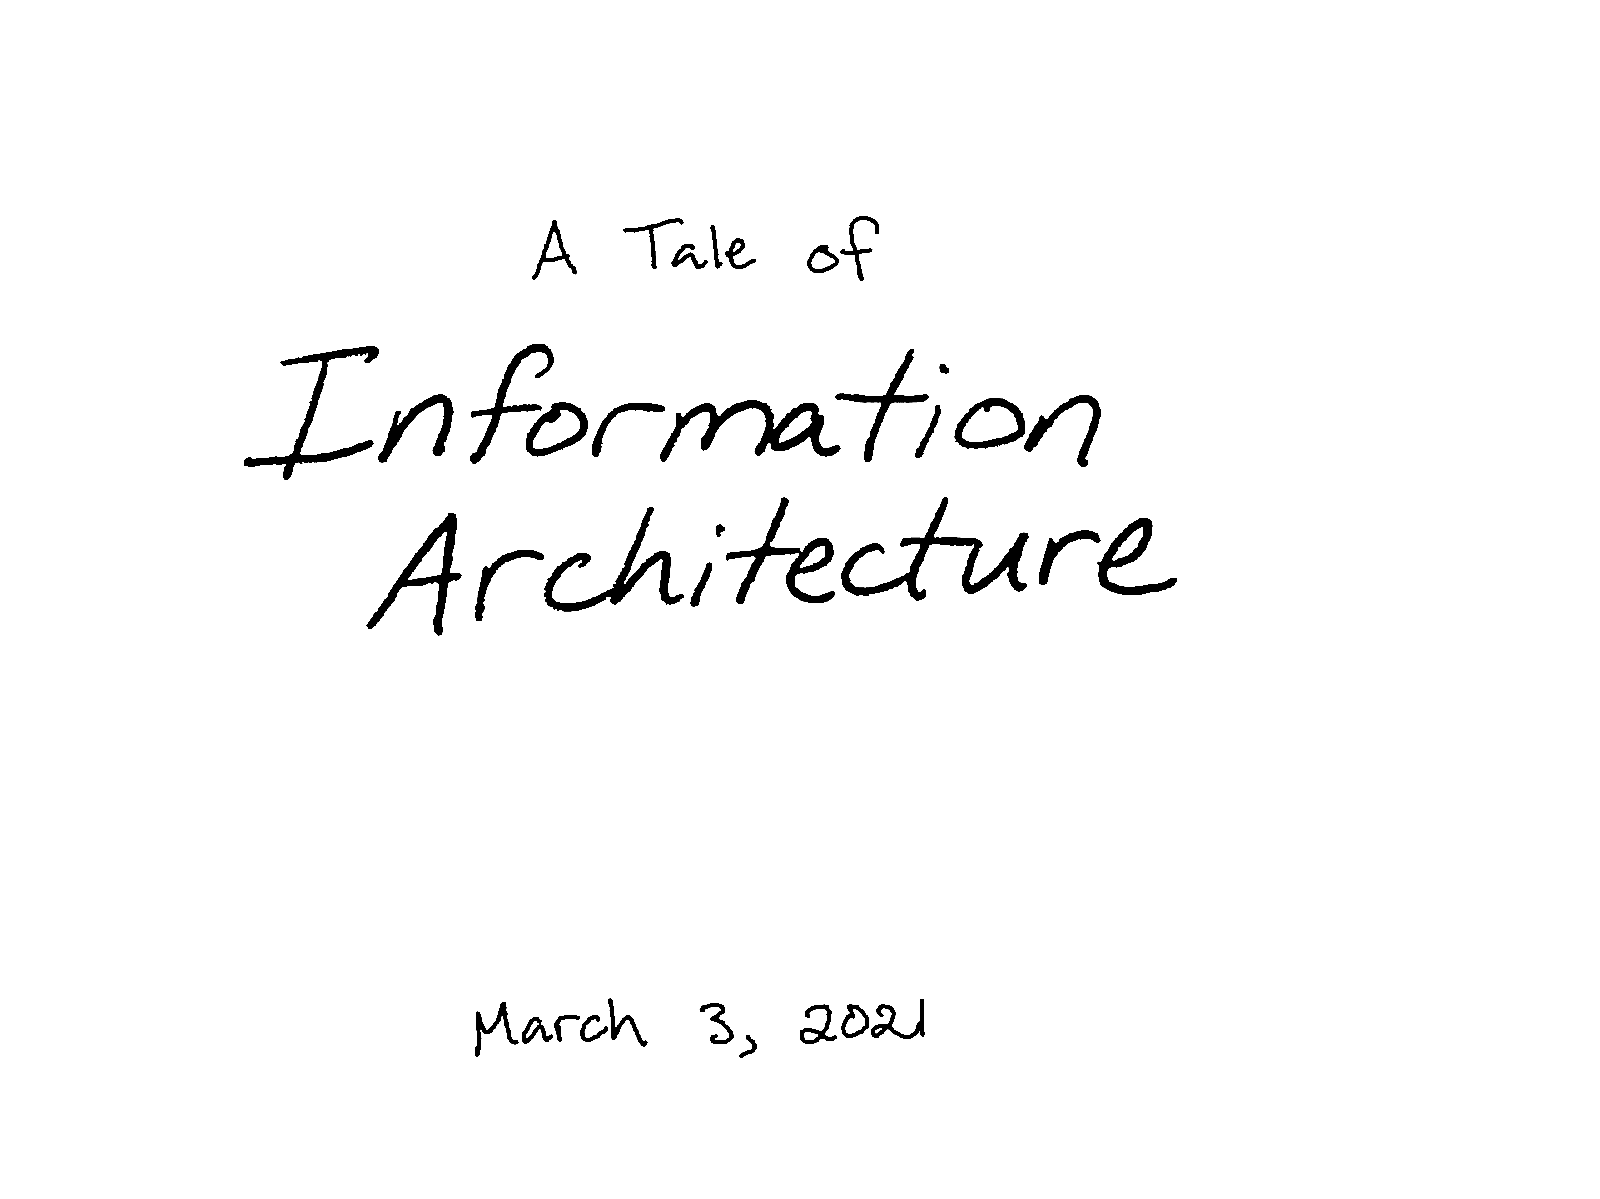 A Tale of Information Architecture